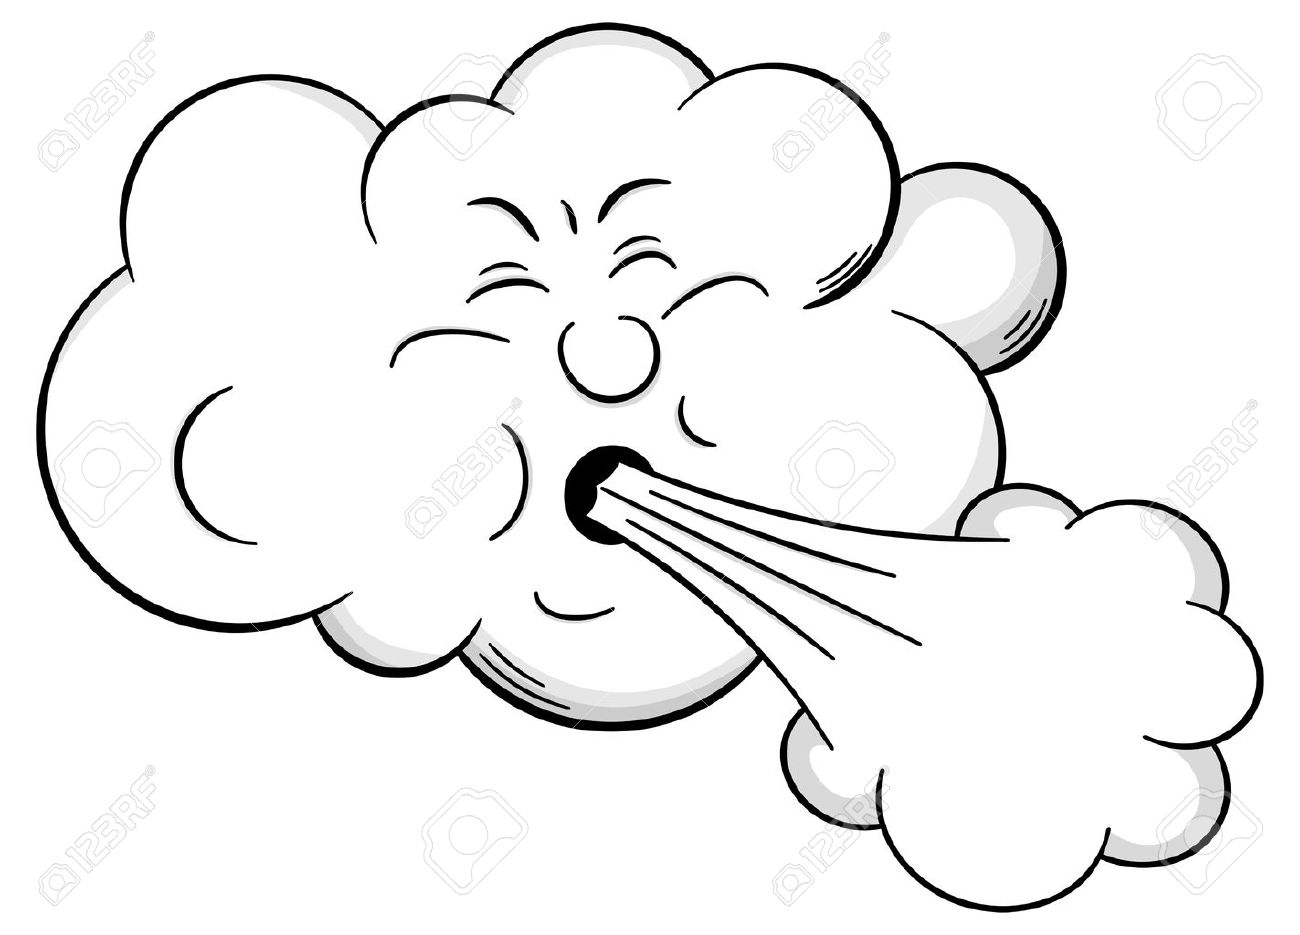 vector illustration of a cartoon cloud that blows wind - 50642160